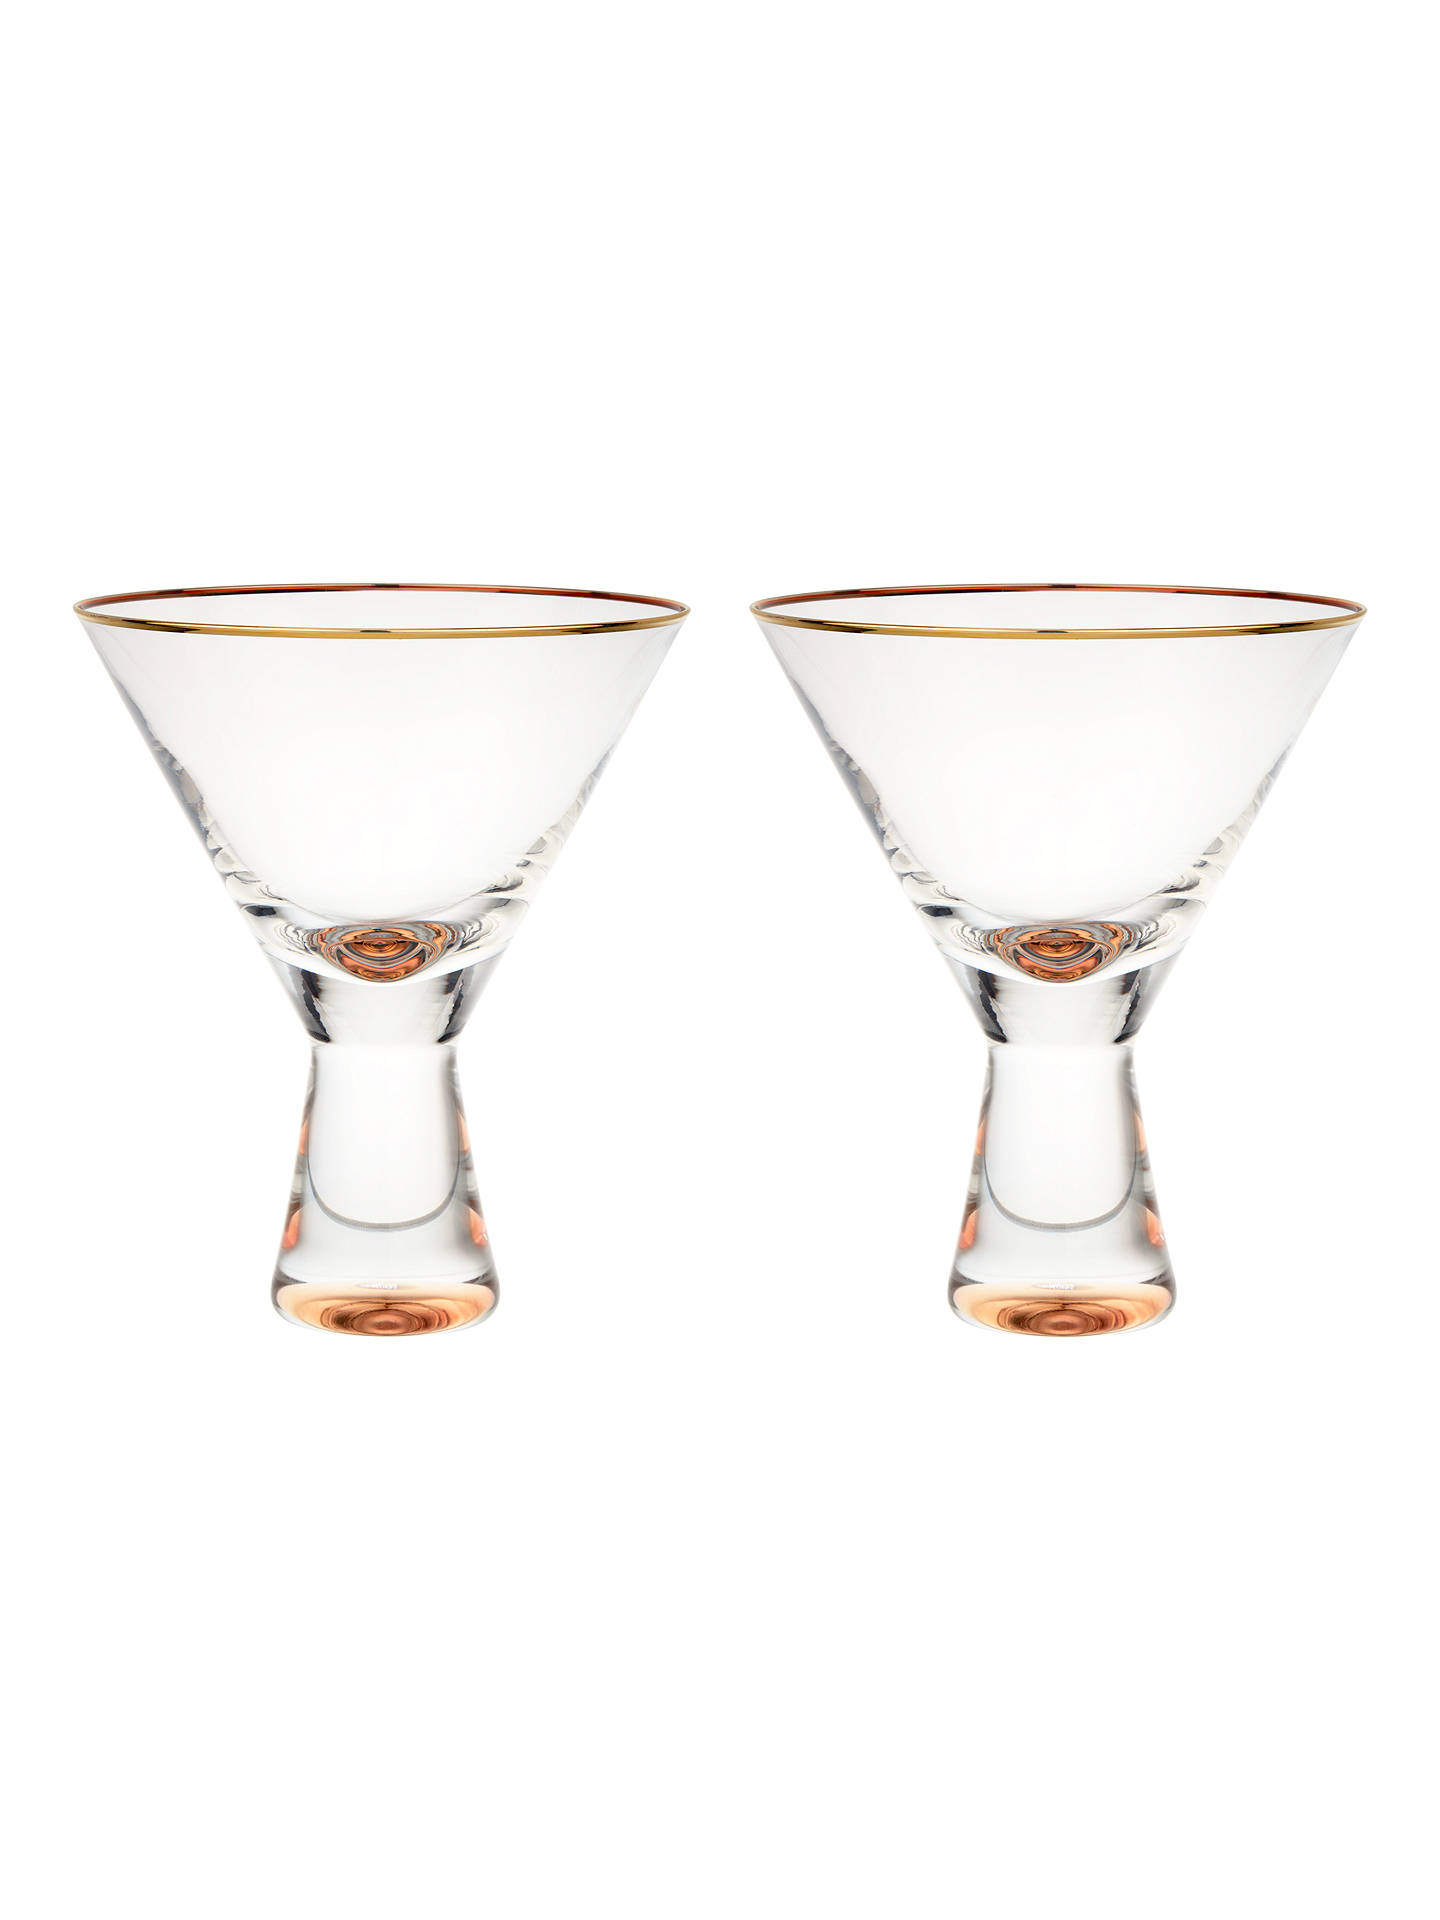 BuyJohn Lewis & Partners Martini Glasses, 150ml, Set of 2, Clear/Gold Online at johnlewis.com